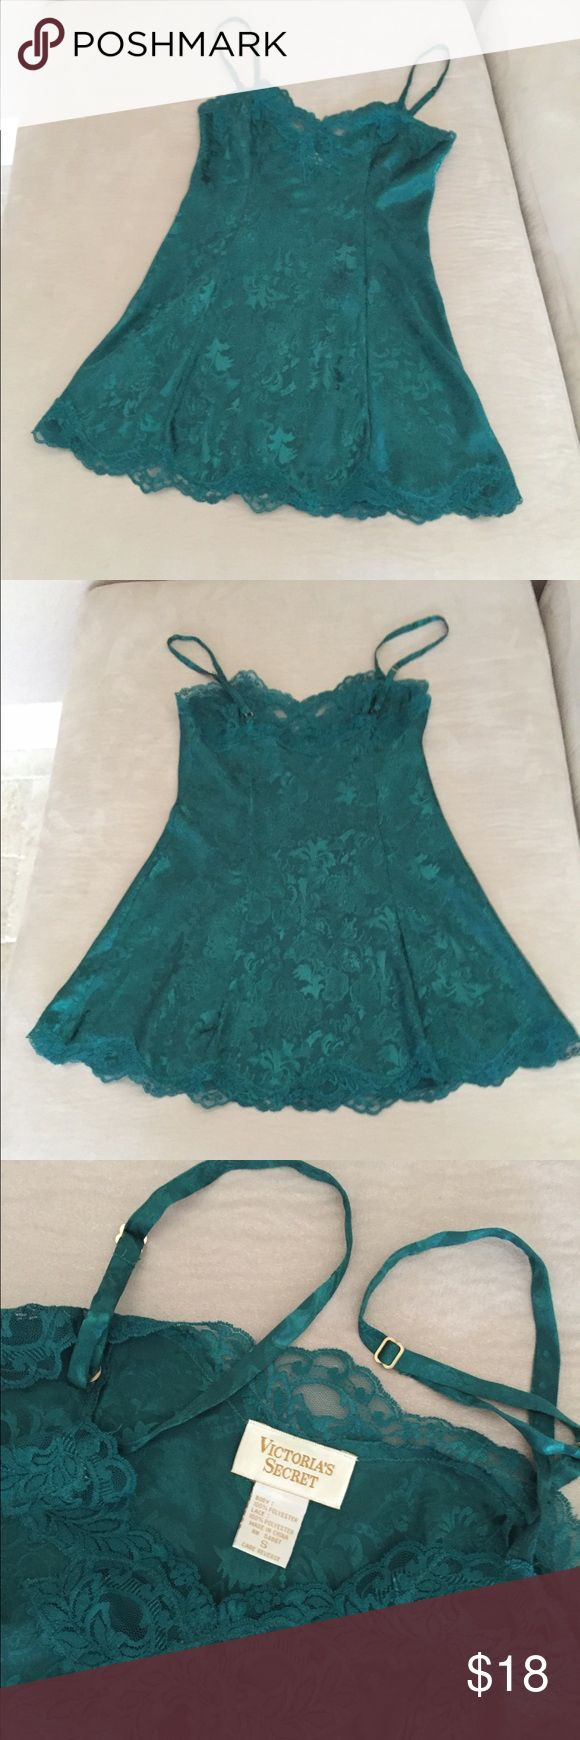 """Victoria's Secret Satin Nightie Victoria's Secret Satin Nightie. Size S. Embossed emerald green satin with lace trim on top and bottom hem. Adjustable straps. 22 """" from underarm to bottom of hem. ** This matches the Emerald green satin robe I have listed In my closet. Ask about a bundle price! EXCELLENT CONDITION!! No trades Victoria's Secret Intimates & Sleepwear Pajamas"""